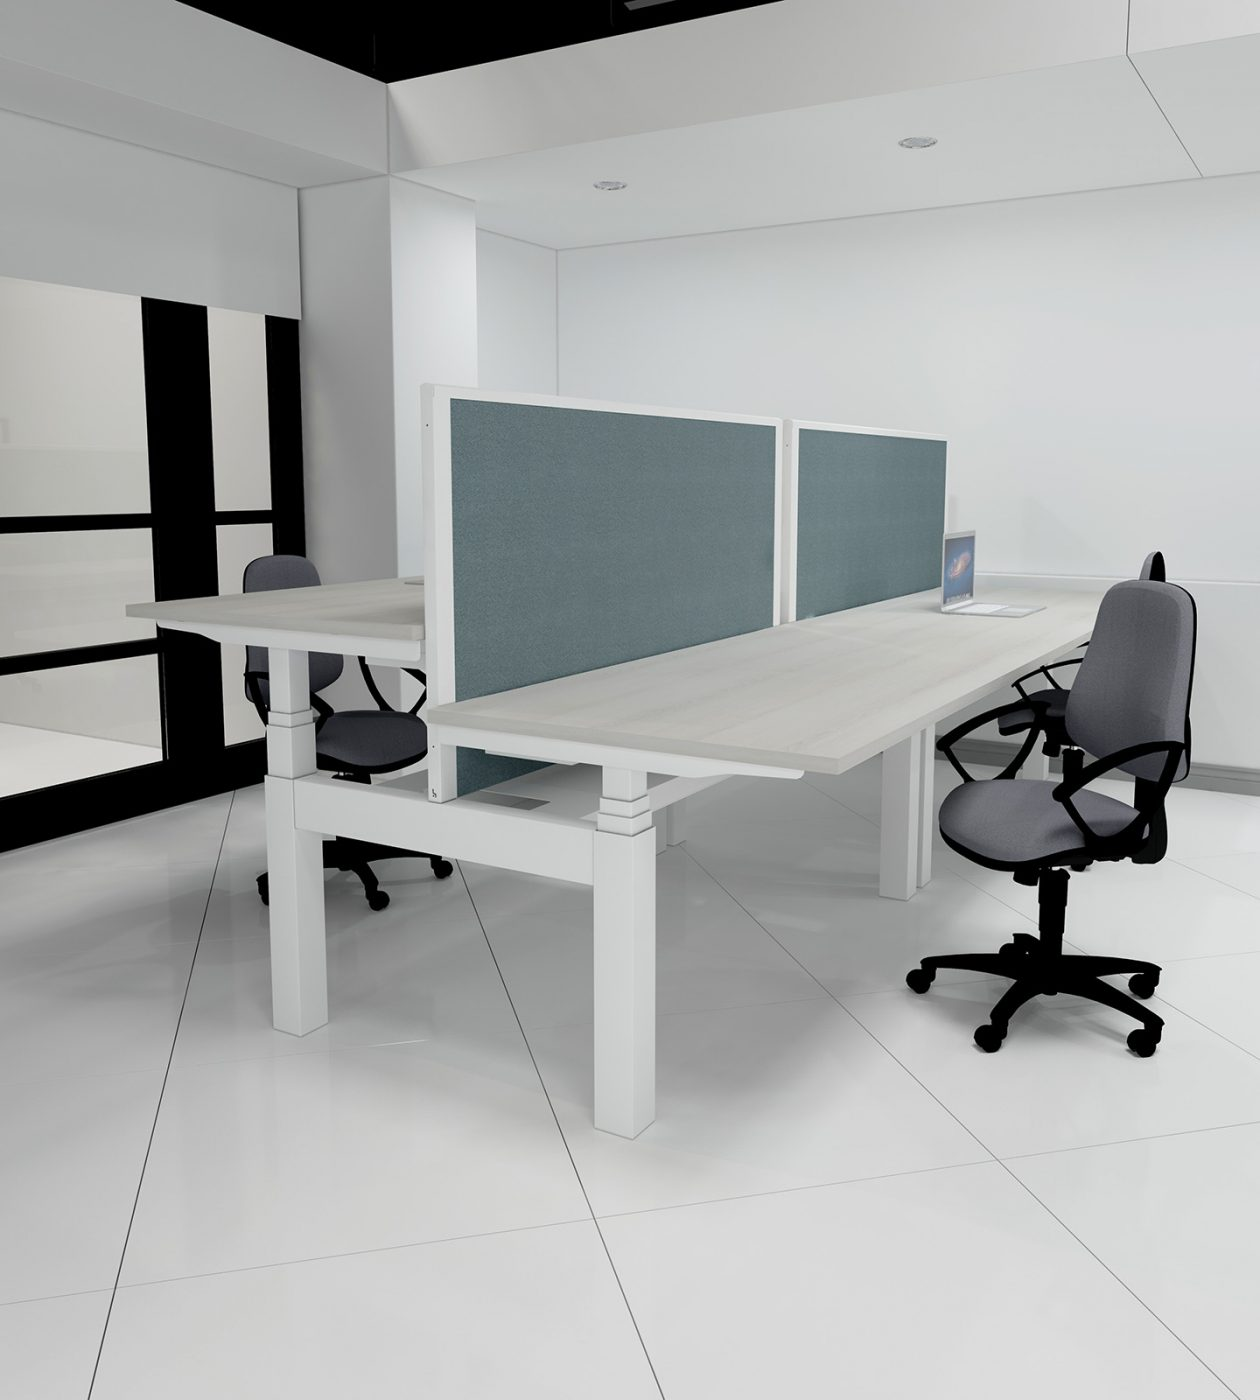 height adjustable, back-to-back desk, double bench, cable management, cable tray, slinky, dividing screen